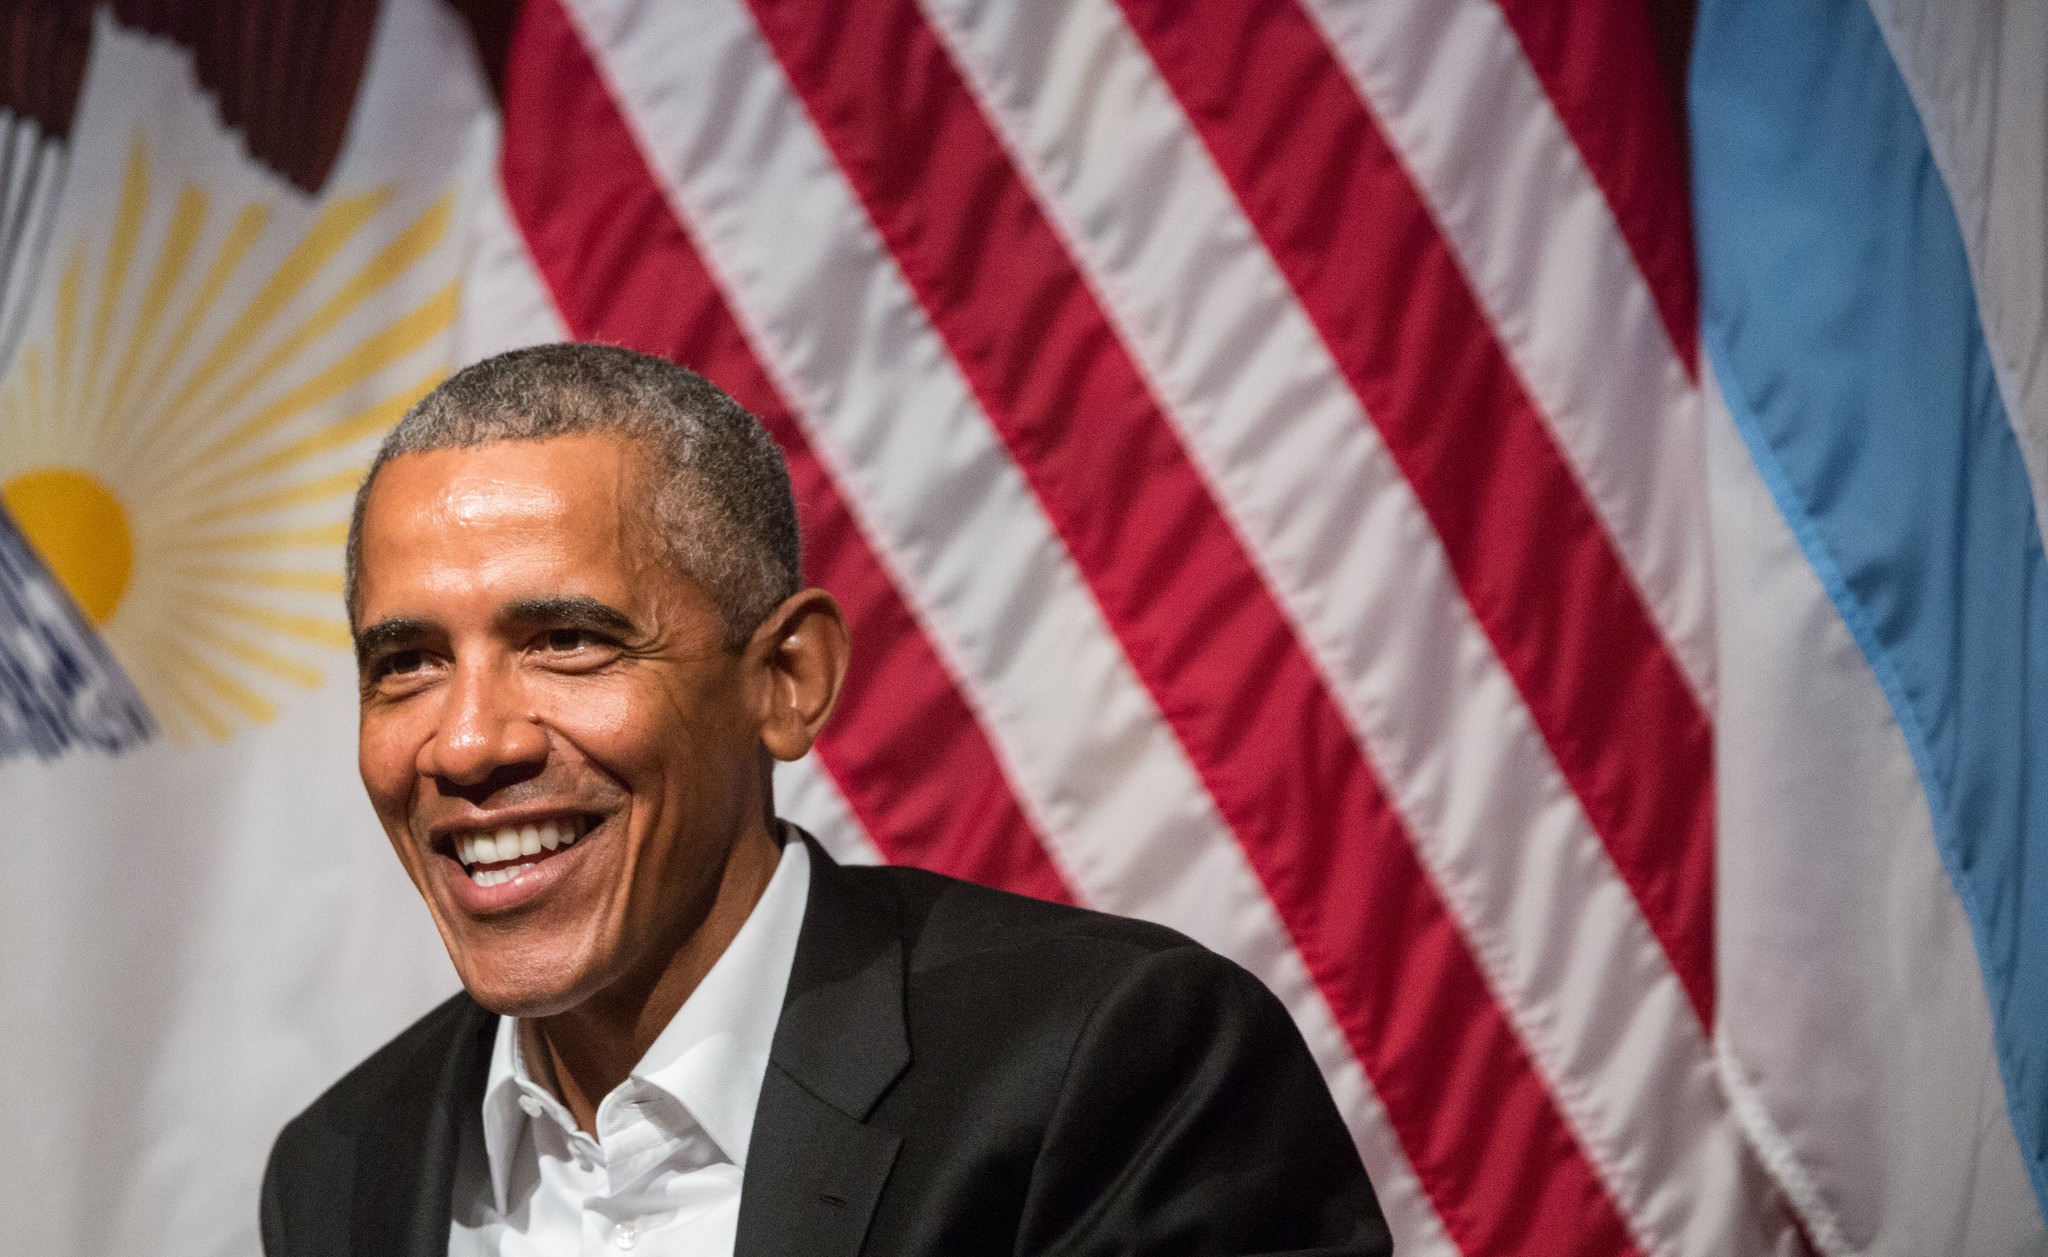 Obamas to unveil model of presidential center on Wednesday, source ...